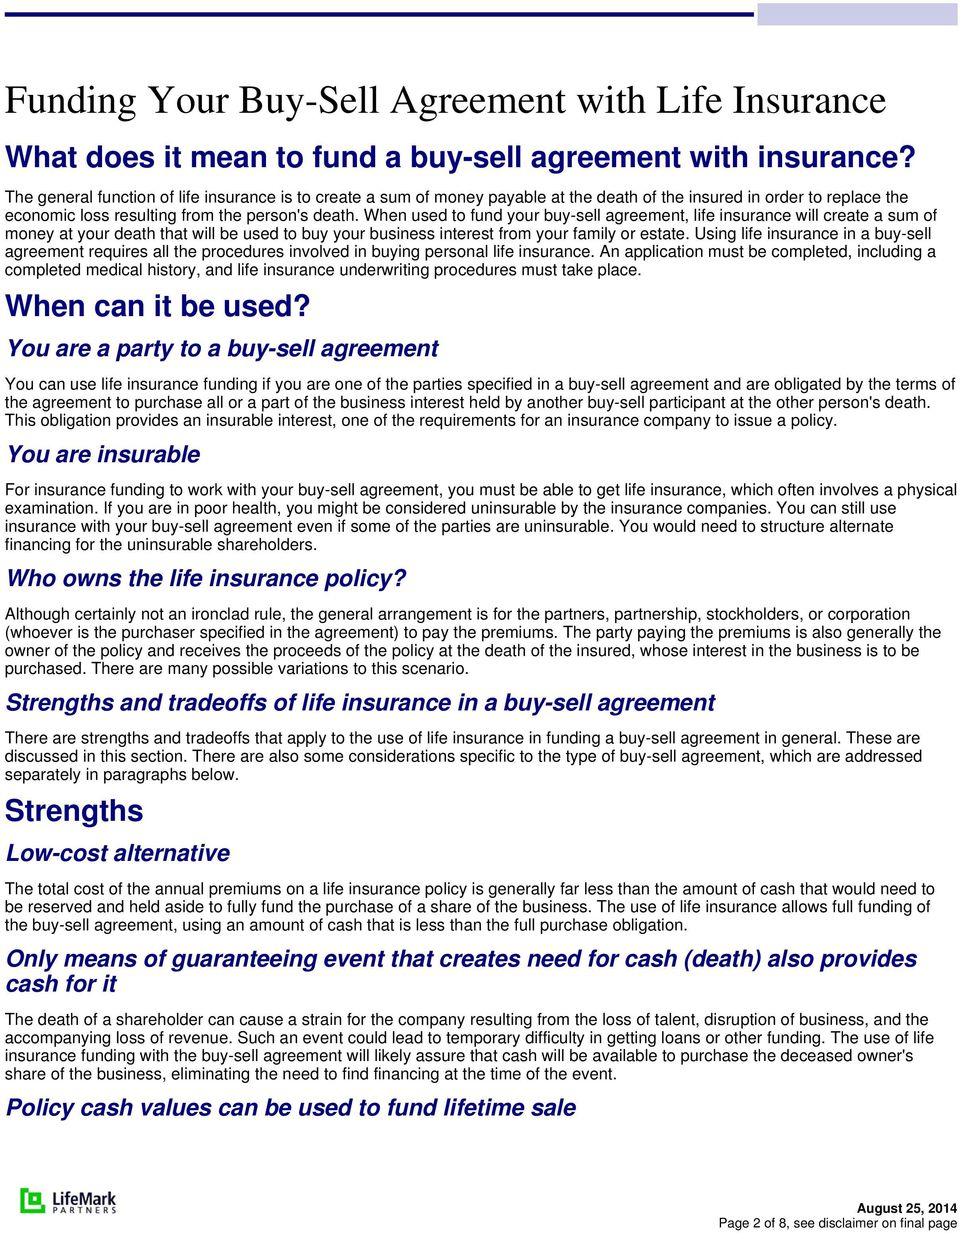 When used to fund your buy-sell agreement, life insurance will create a sum of money at your death that will be used to buy your business interest from your family or estate.